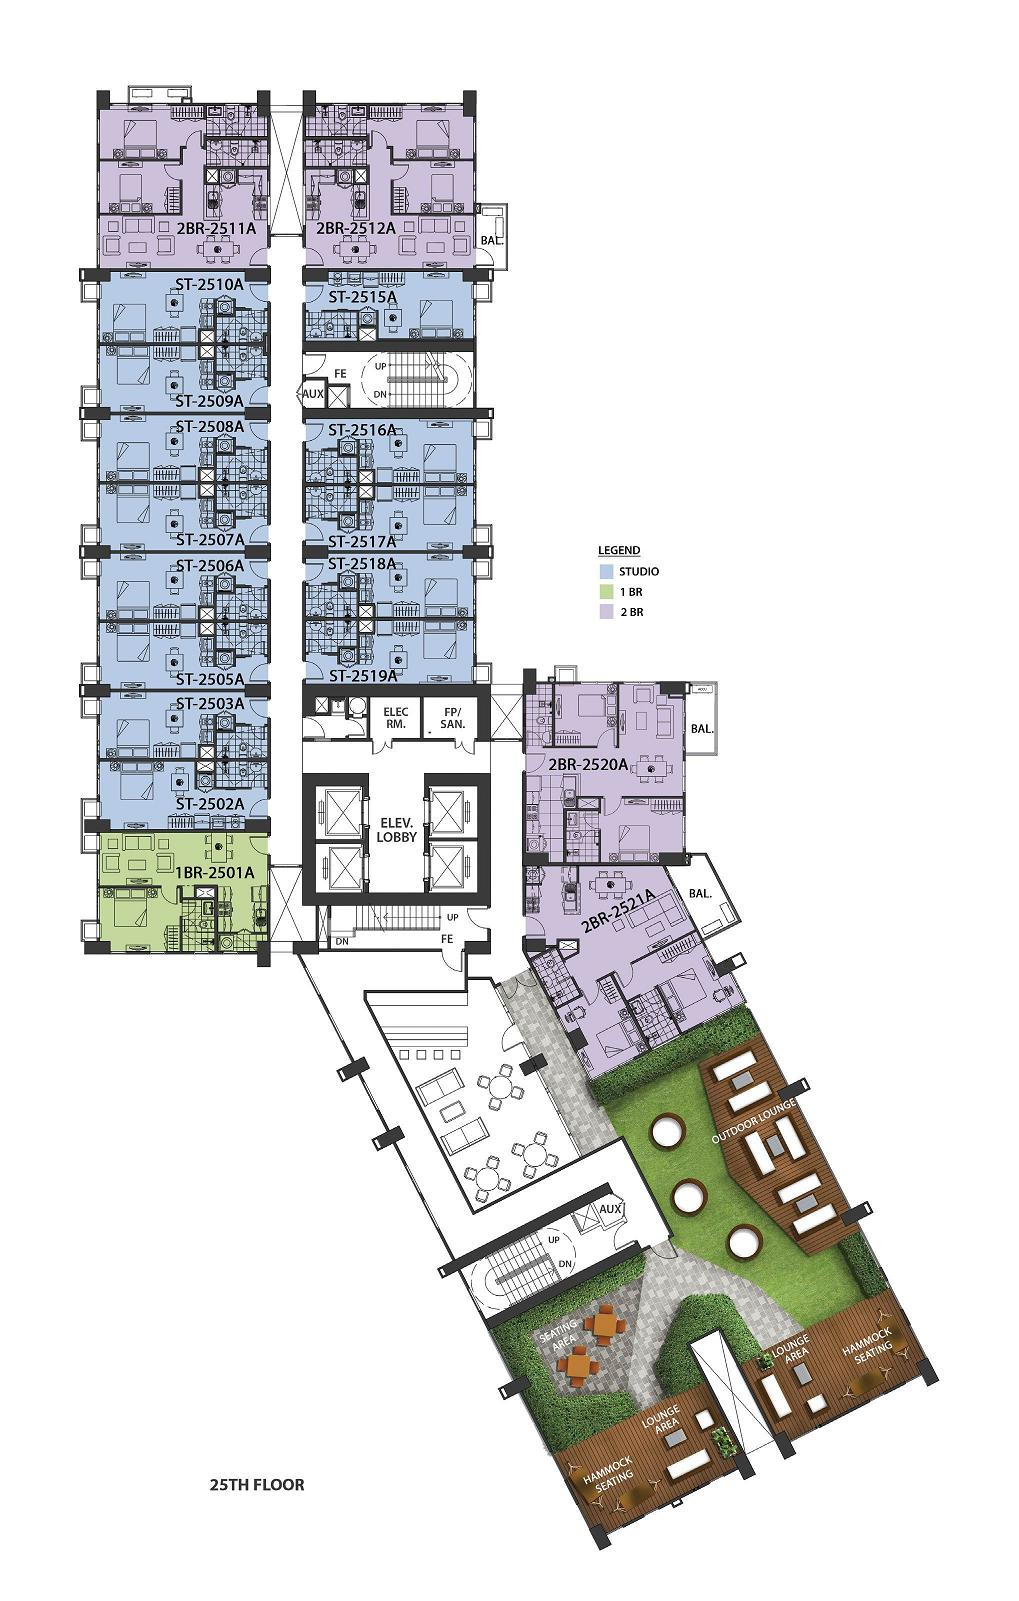 Lazuli - Upper Level Amenity Floor Plan at 25th Floor Plan